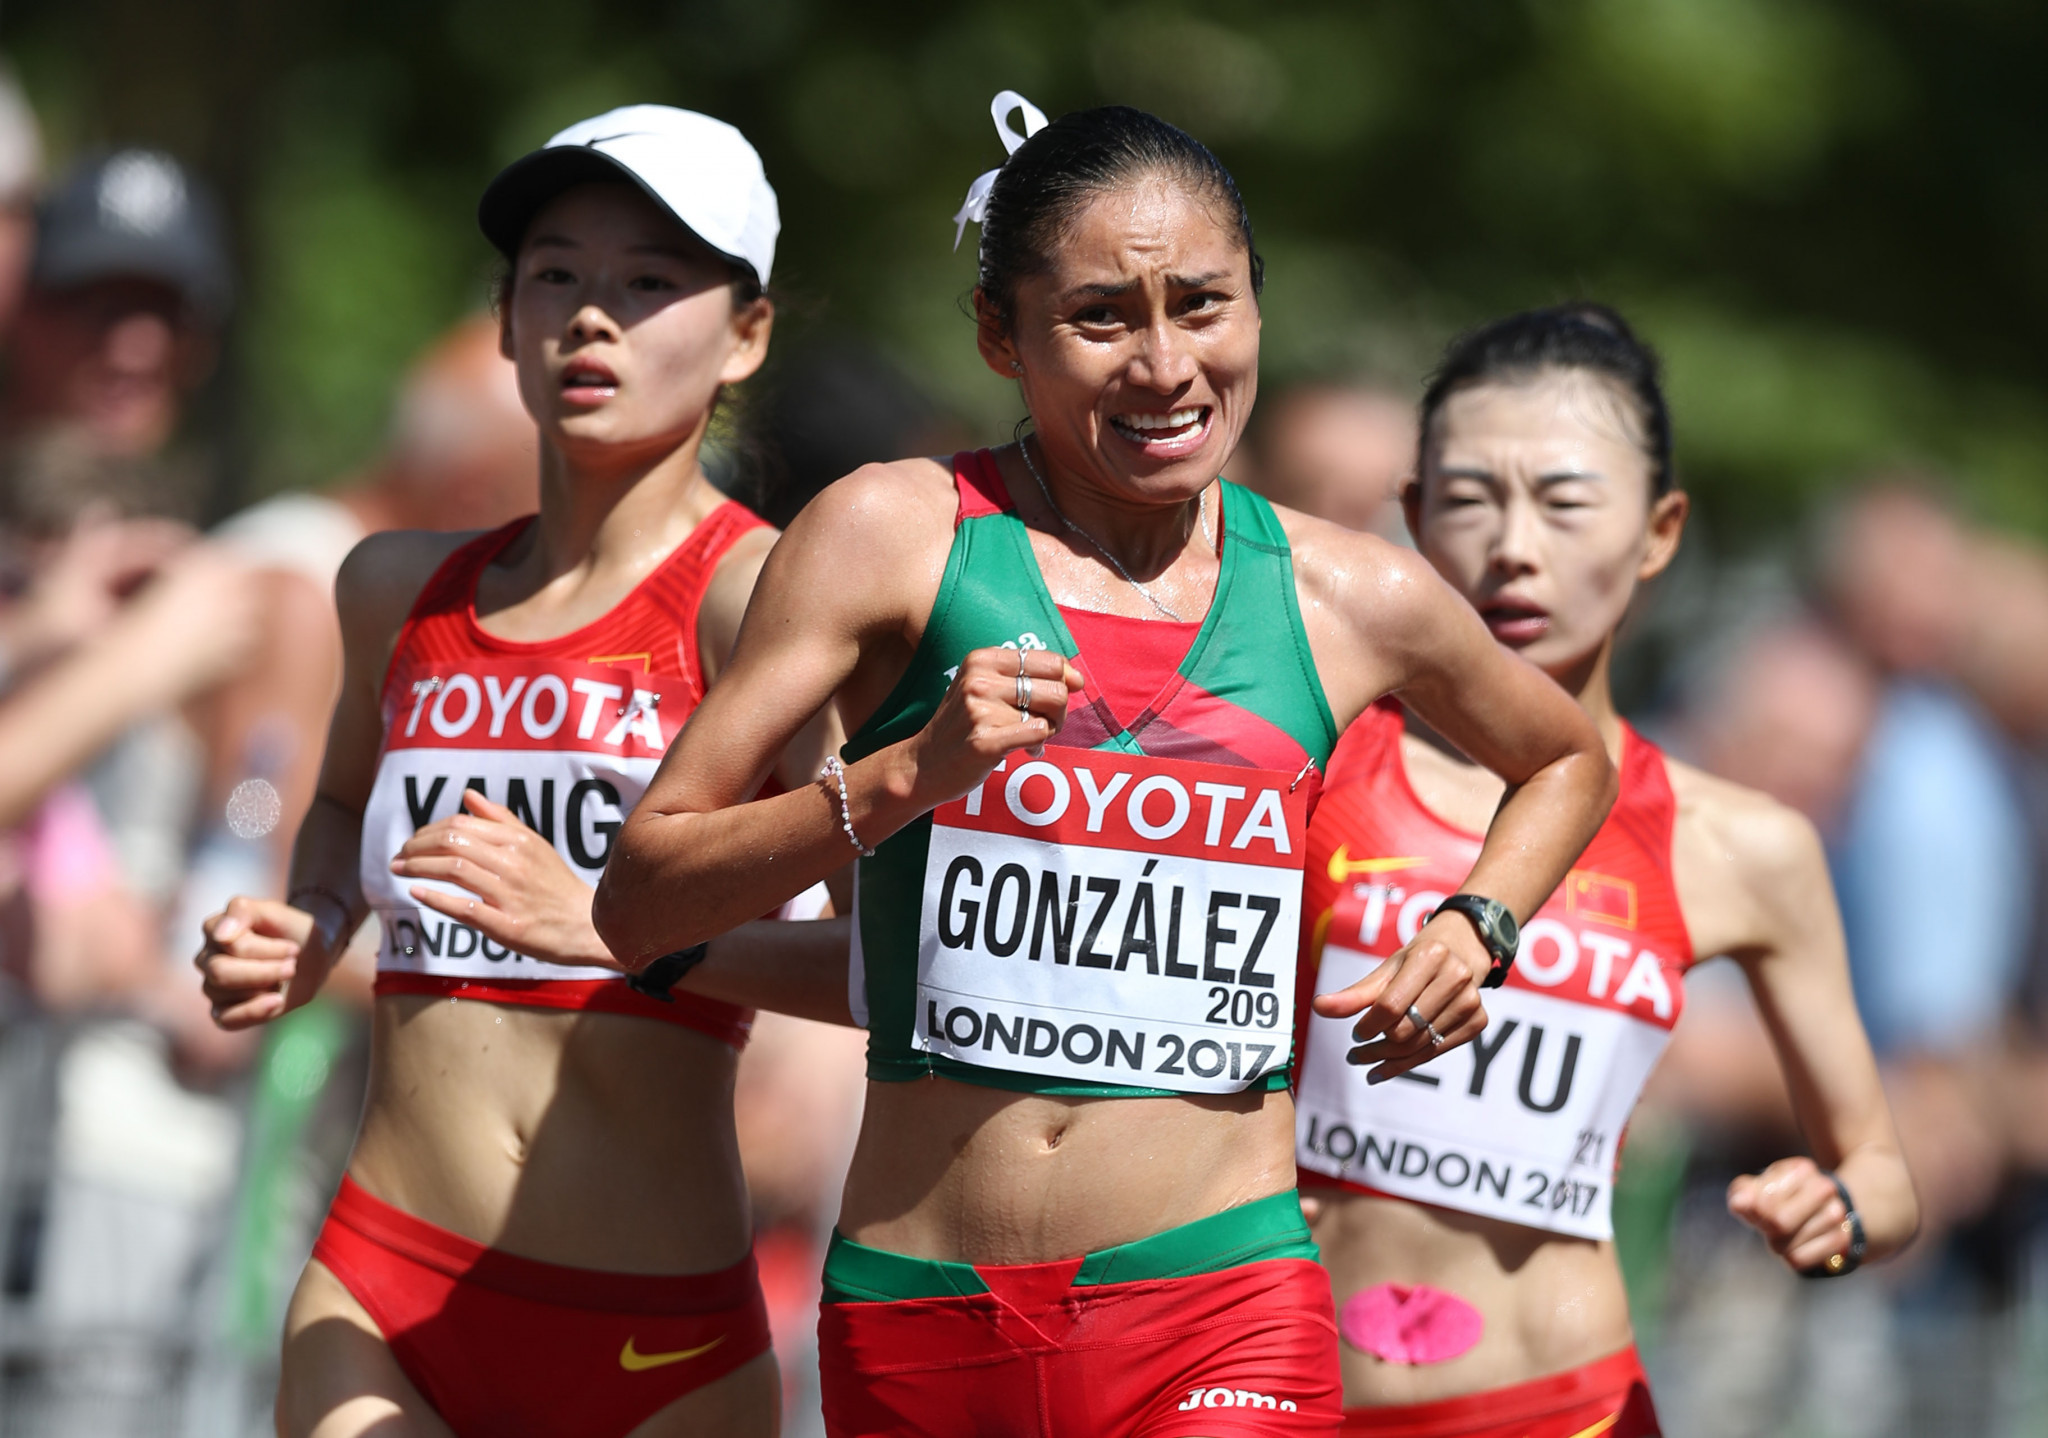 Olympic silver medallist González gets further four-year doping ban for falsifying evidence